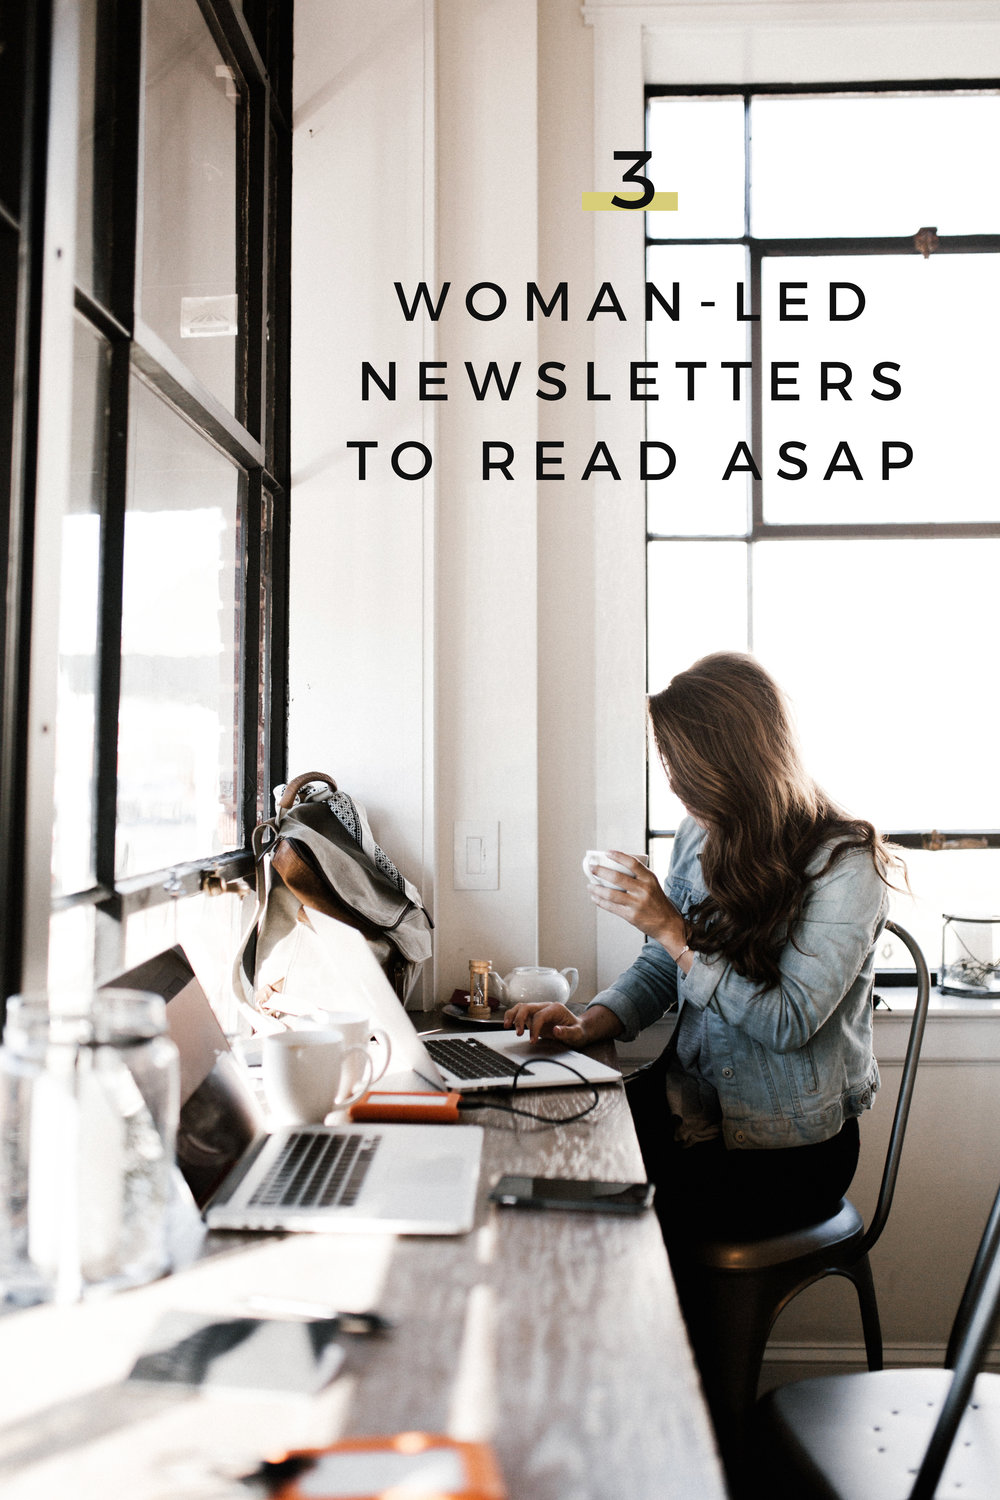 3 Woman-Led Newsletters to Read ASAP